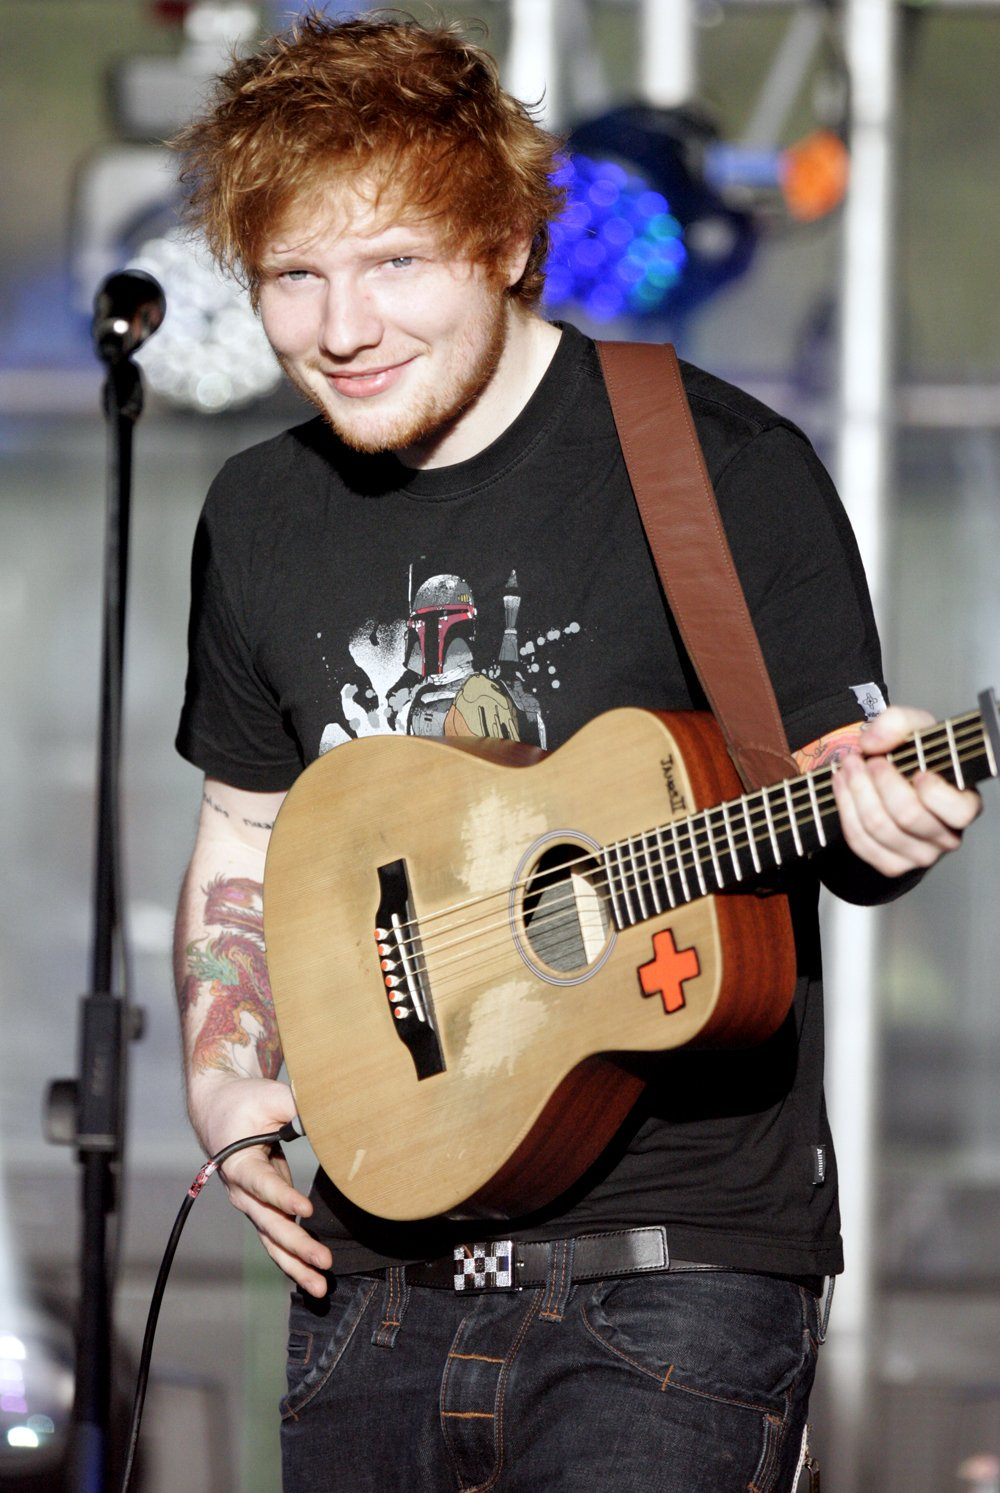 Happy birthday to an amazing singer ed sheeran!!